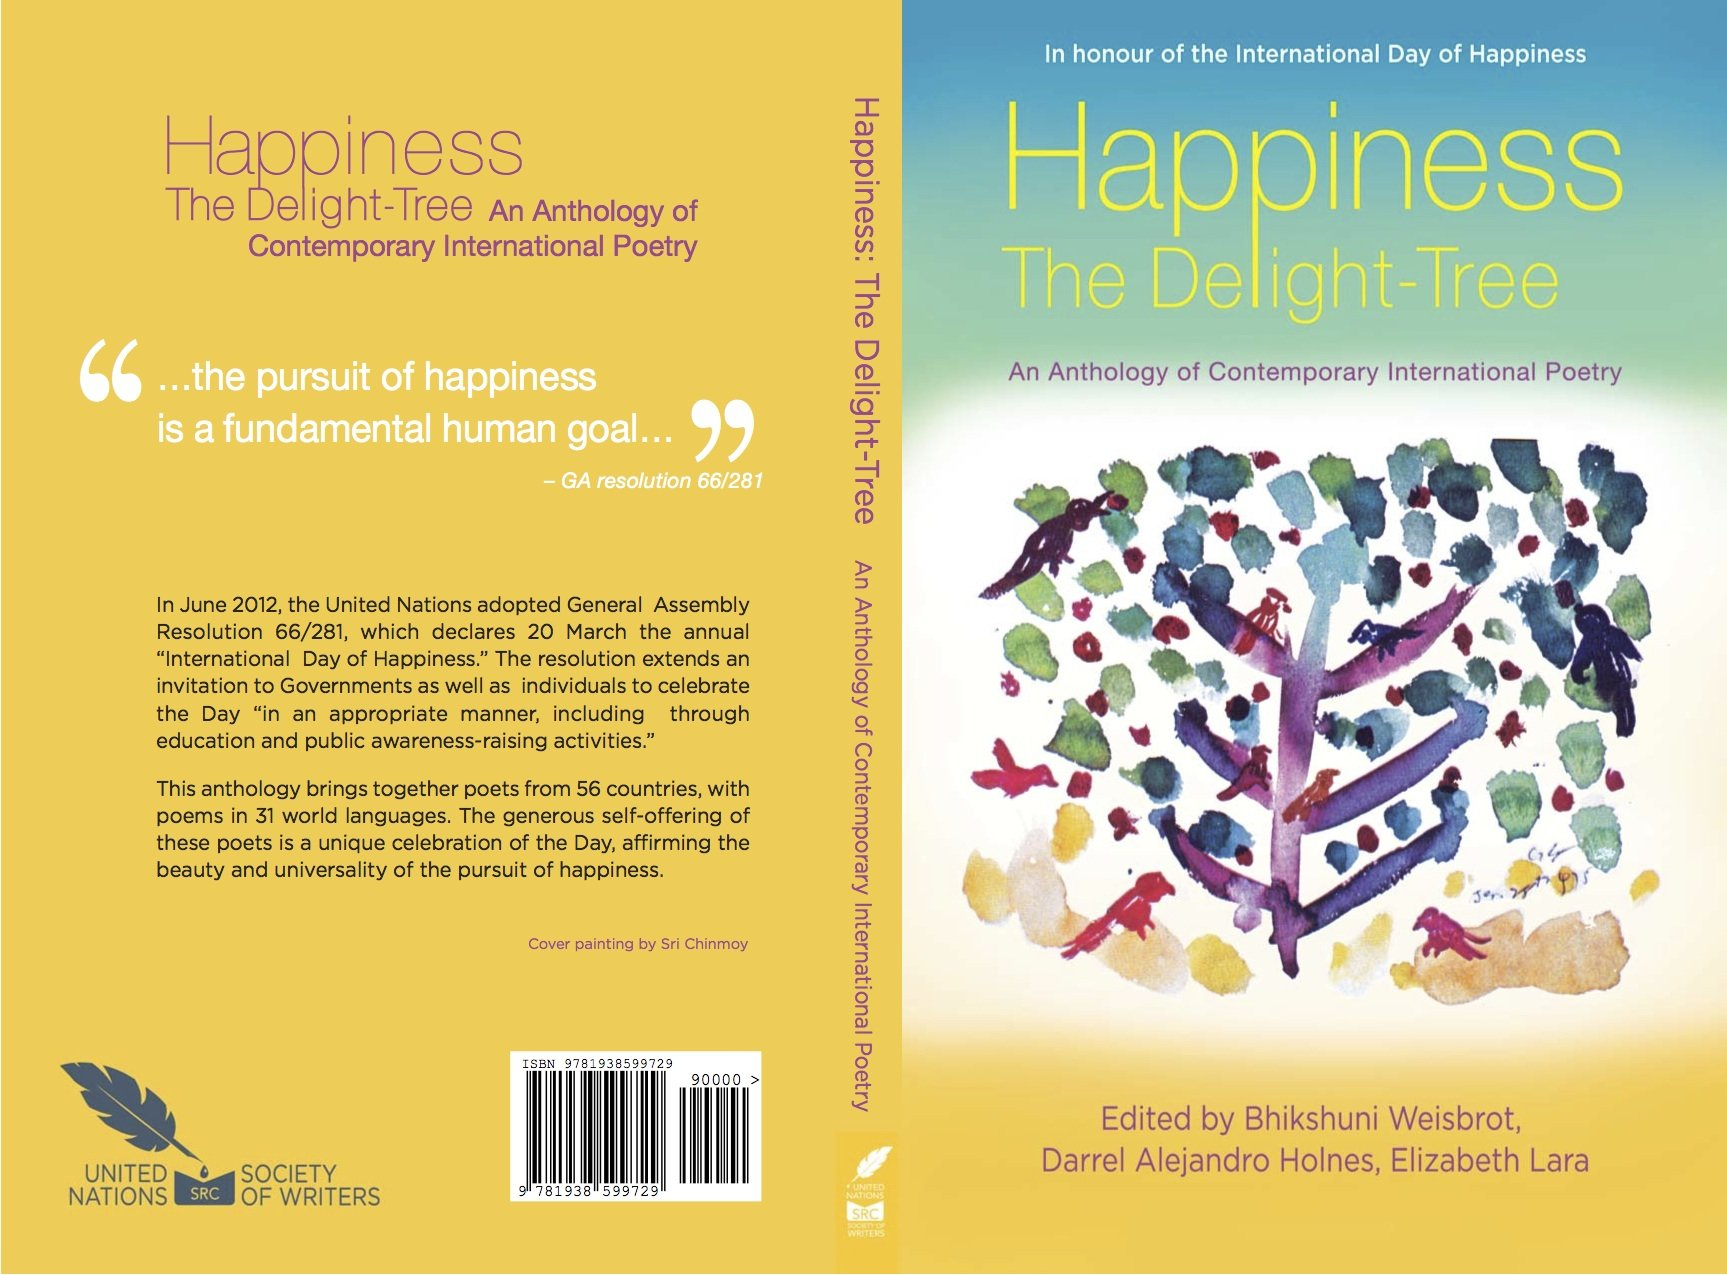 Happiness, The Delight-Tree